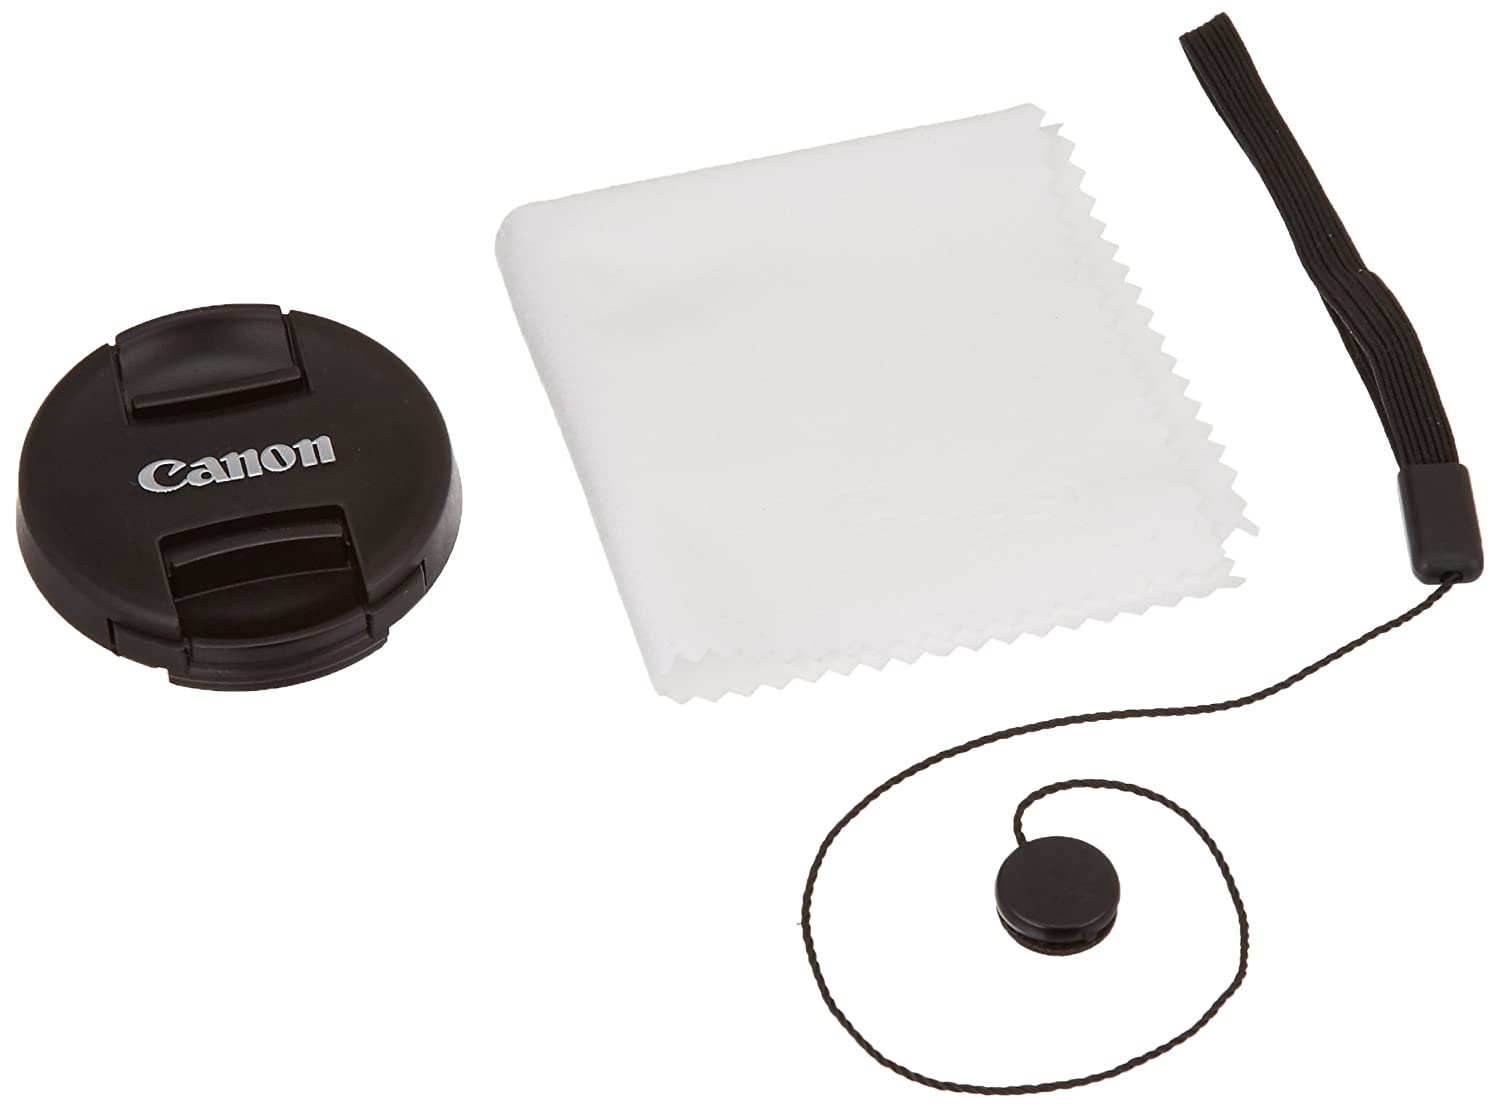 52mm Snap On Lens Cap Replaces E 52 Ii For Canon Eos Lenses With Lens Keeper Black E 52ii